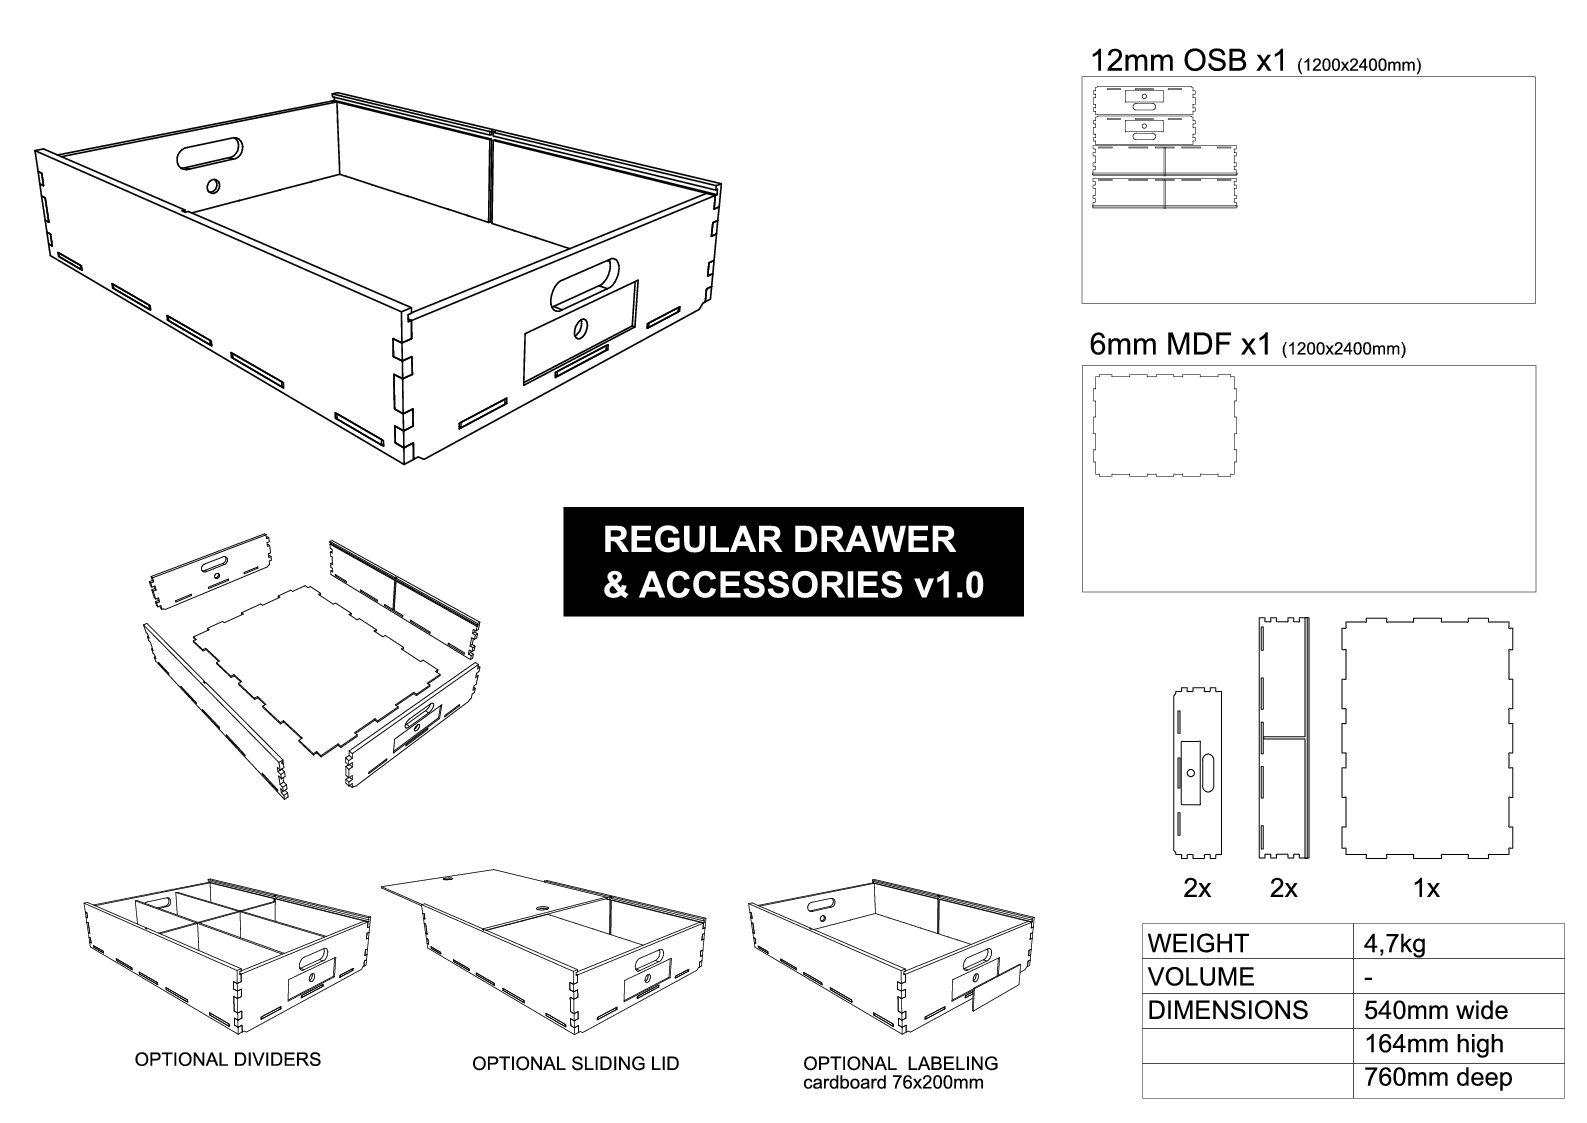 Drawer Regular assembly drawing